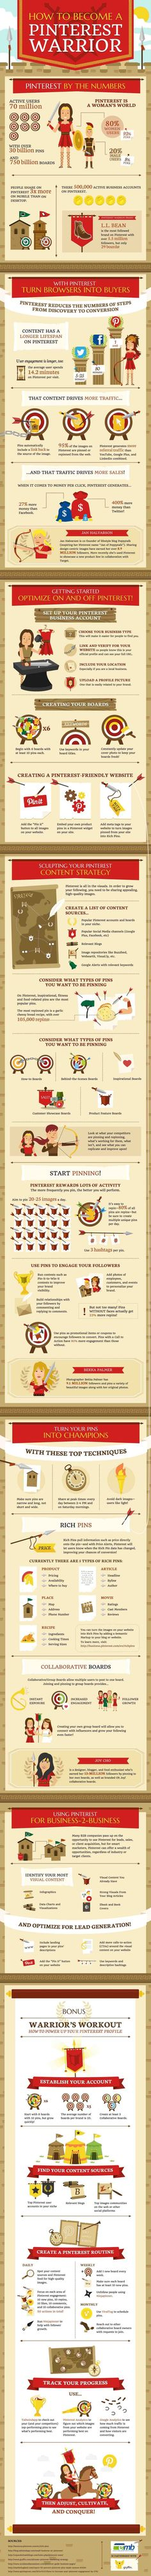 How Do You Use Pinterest To Drive More Traffic and Sales? #Infographic